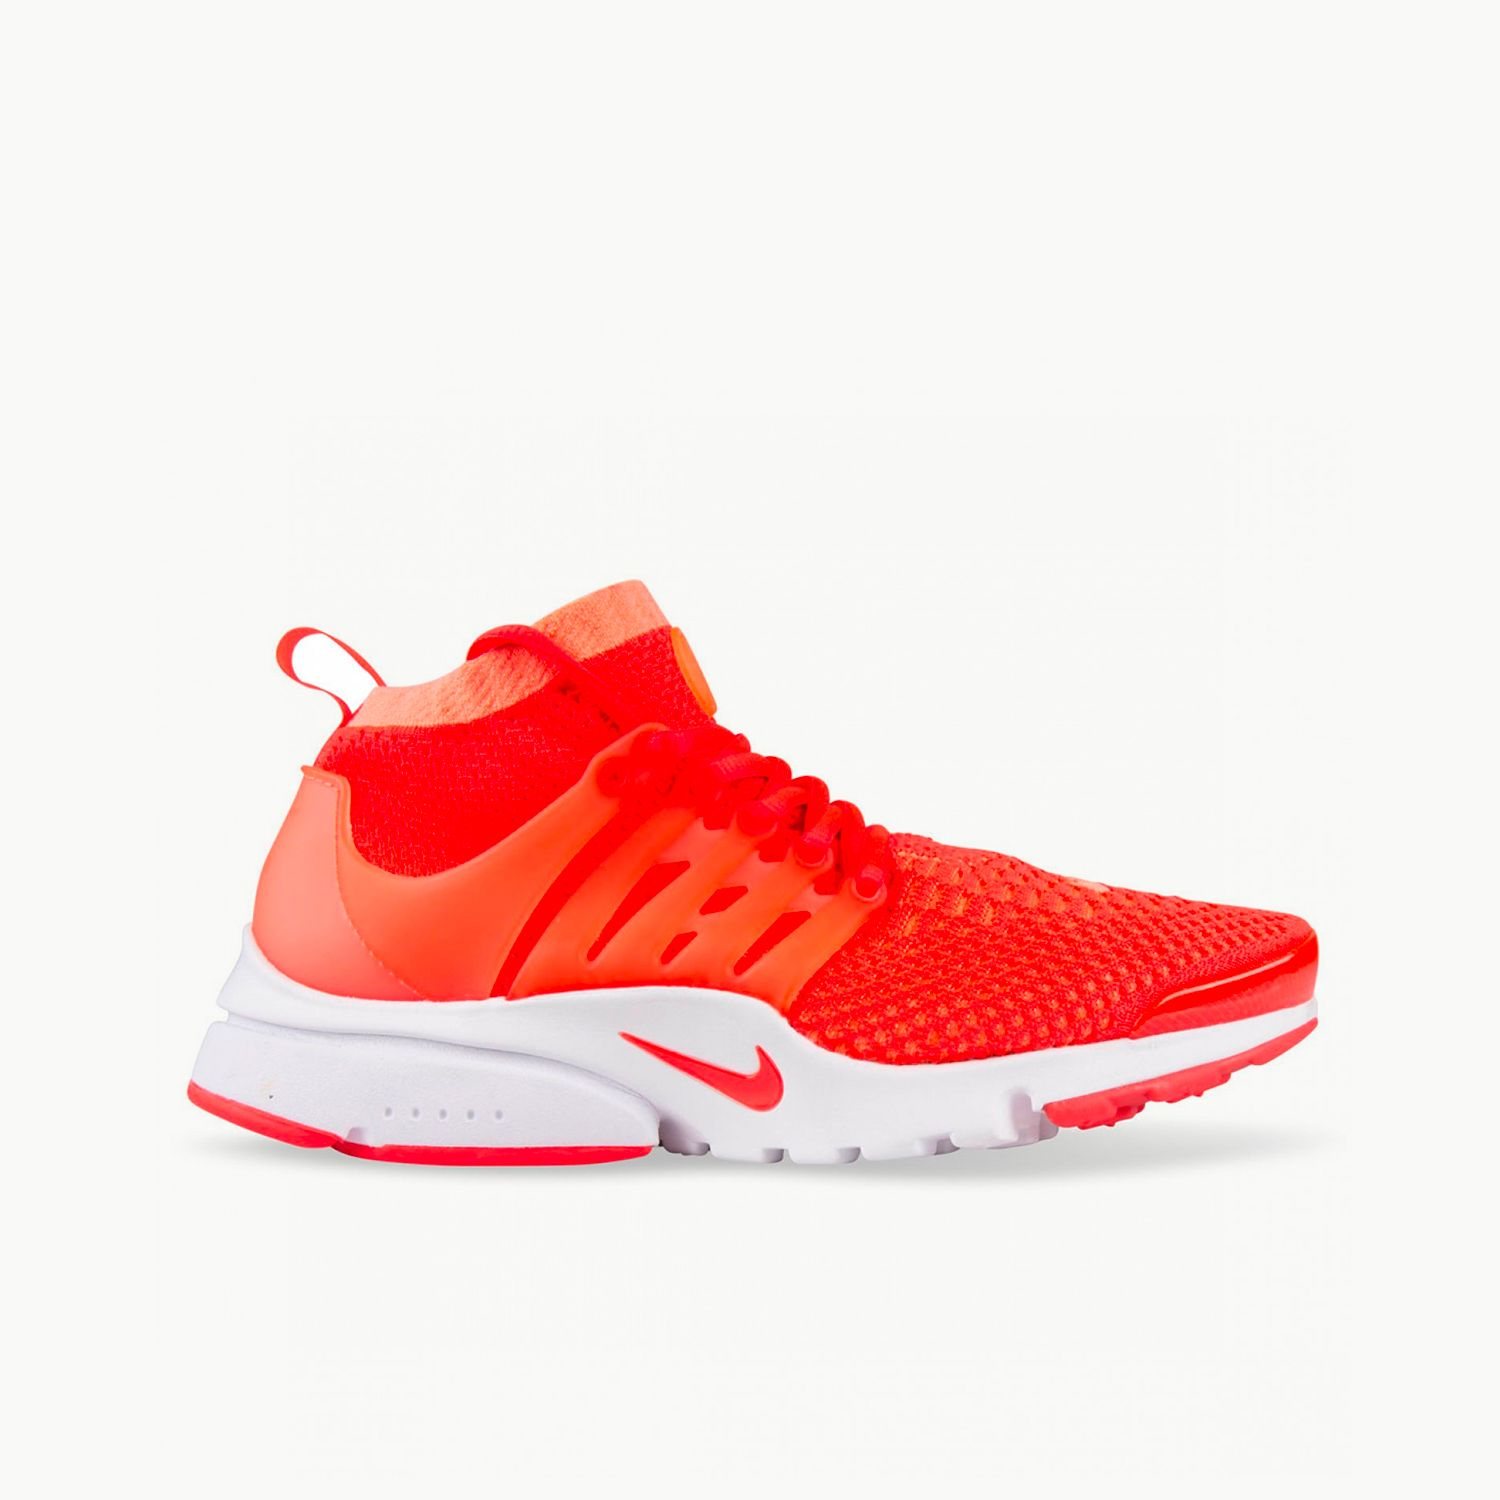 new style f5f24 b282f   EXCLUSIVE   NIKE SPORTSWEAR AIR PRESTO ULTRA FLYKNIT   Available at HYPE  DC